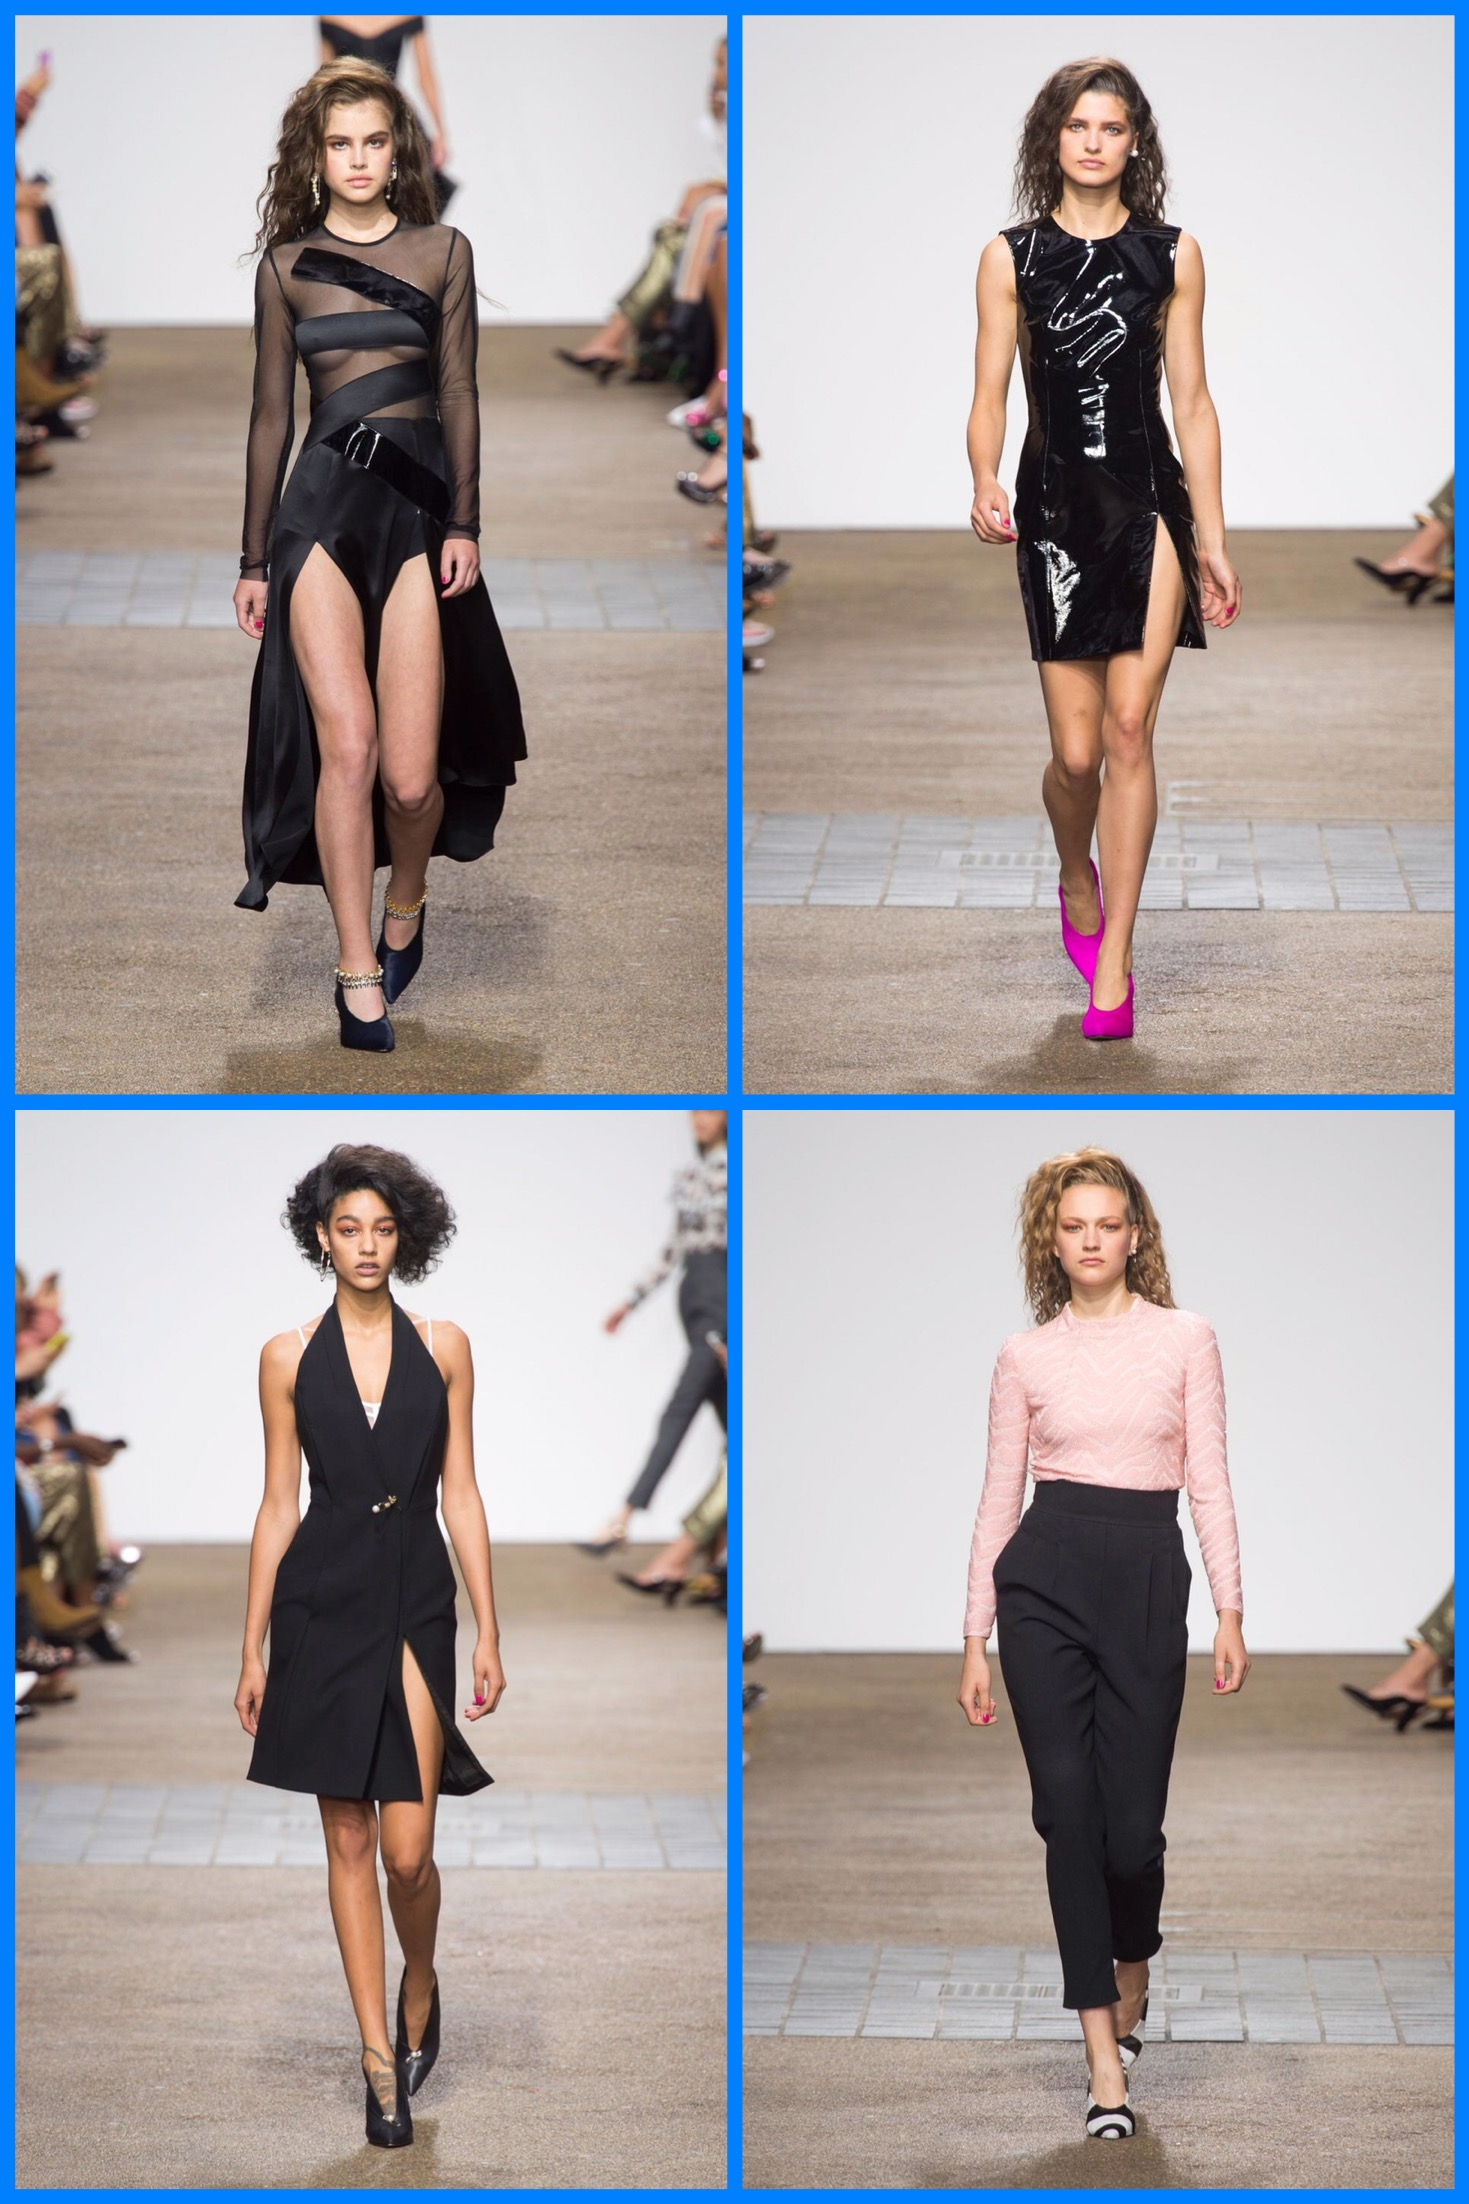 london-fashion-week-pret-a-porter-spring-summer-2017-style-topshop-unique